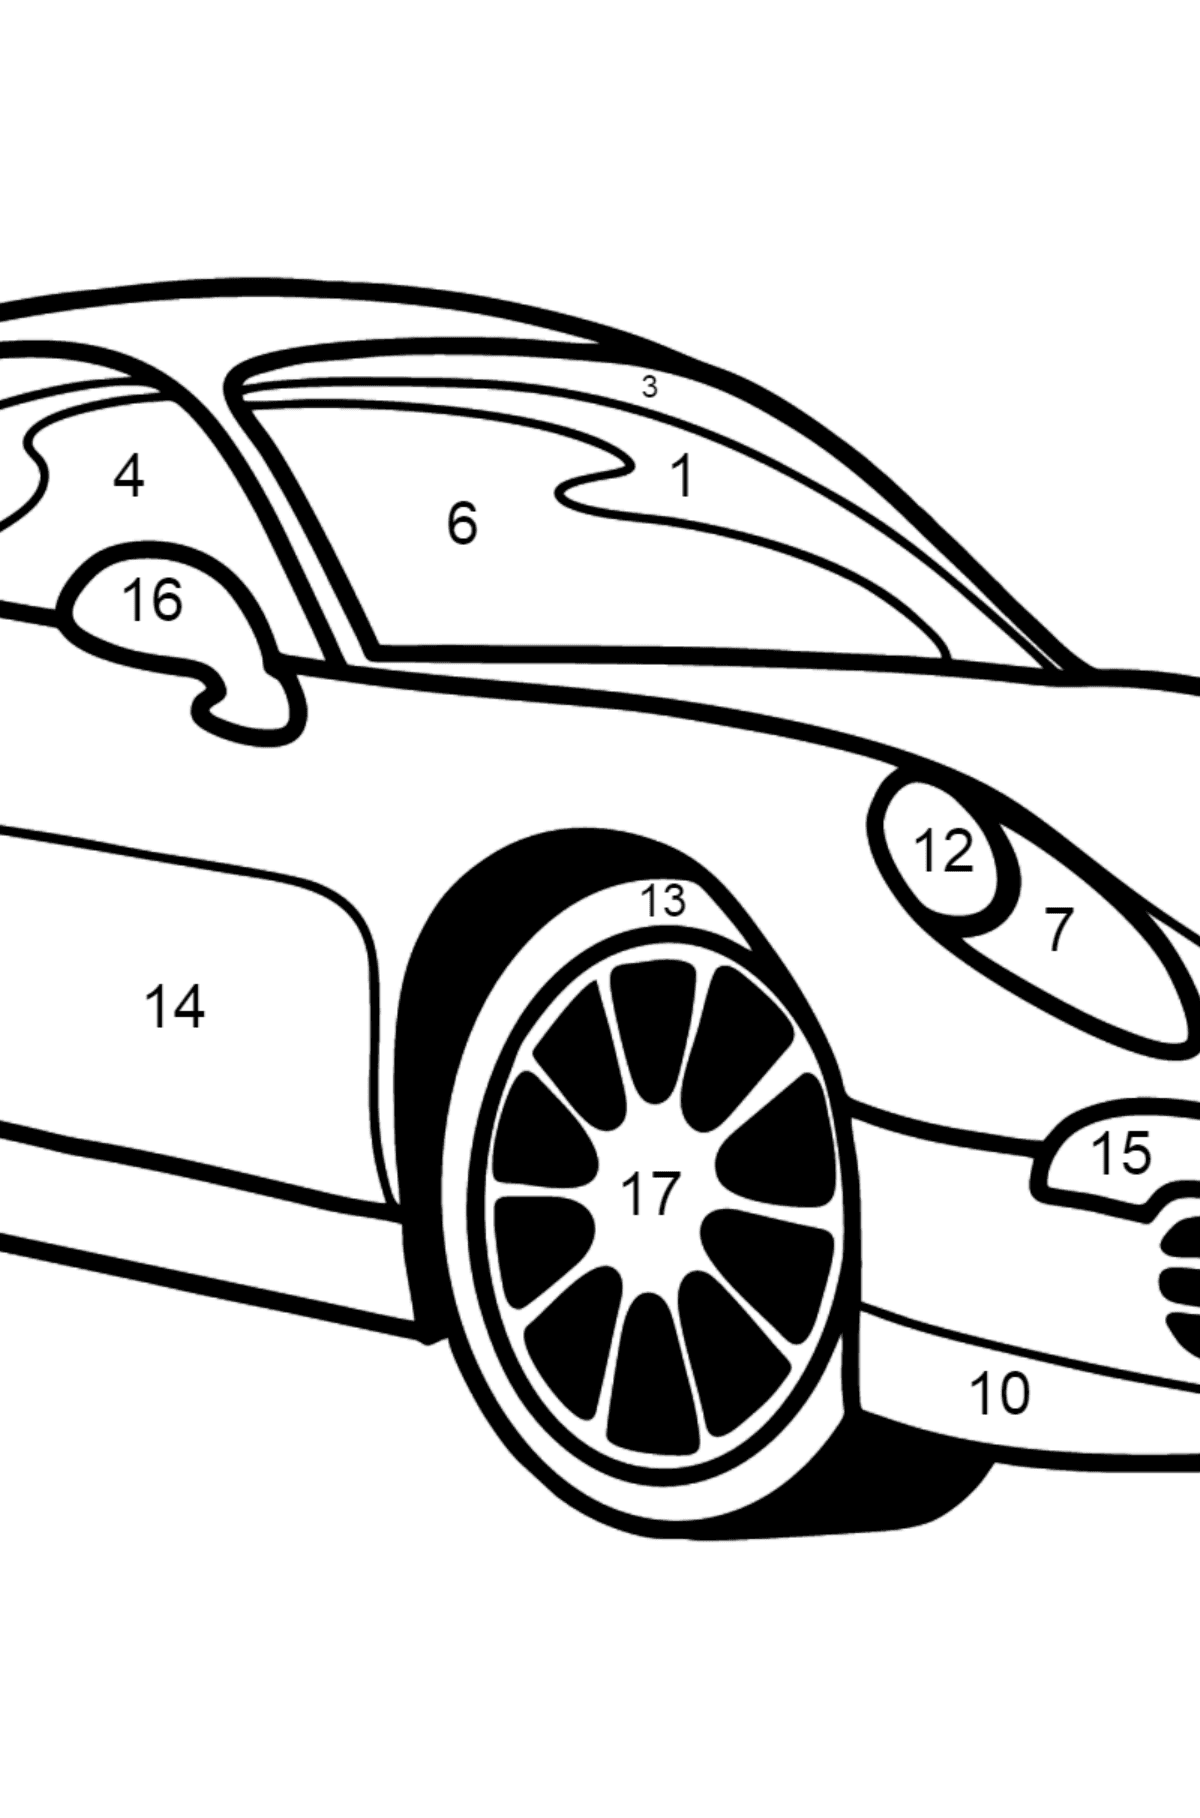 Porsche Cayman Sports Car coloring page - Coloring by Numbers for Kids